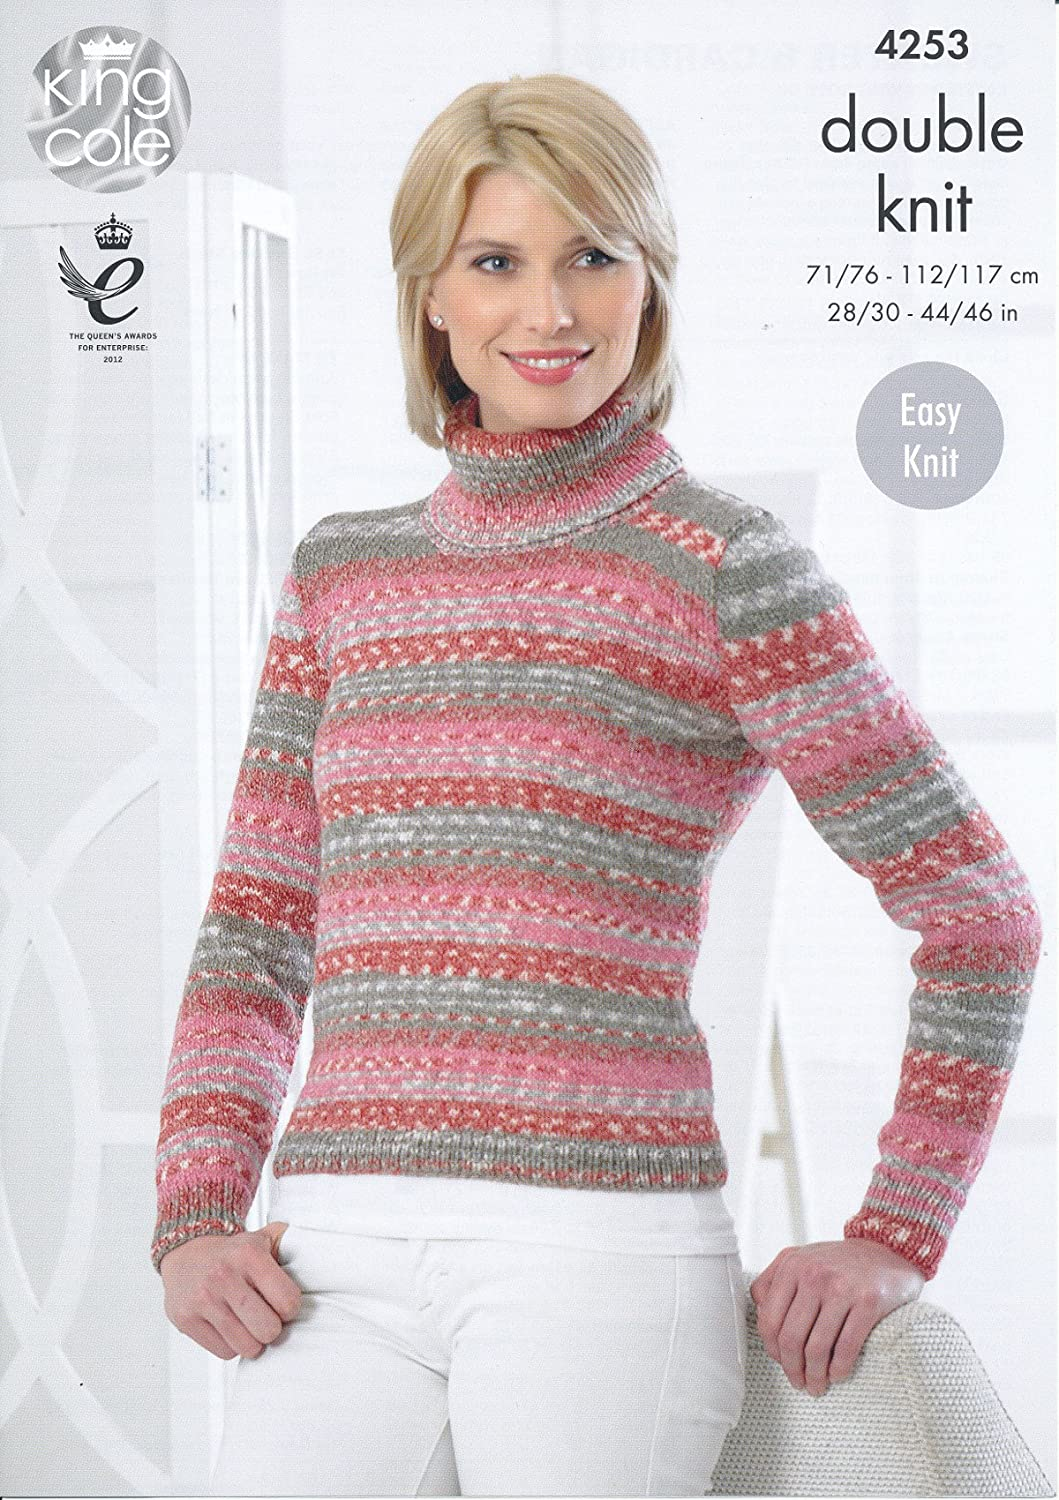 f297020a38b57 King Cole Ladies Double Knitting Pattern Womens Polo Neck Sweater   Cardigan  Drifter DK (4253)  Amazon.co.uk  Kitchen   Home